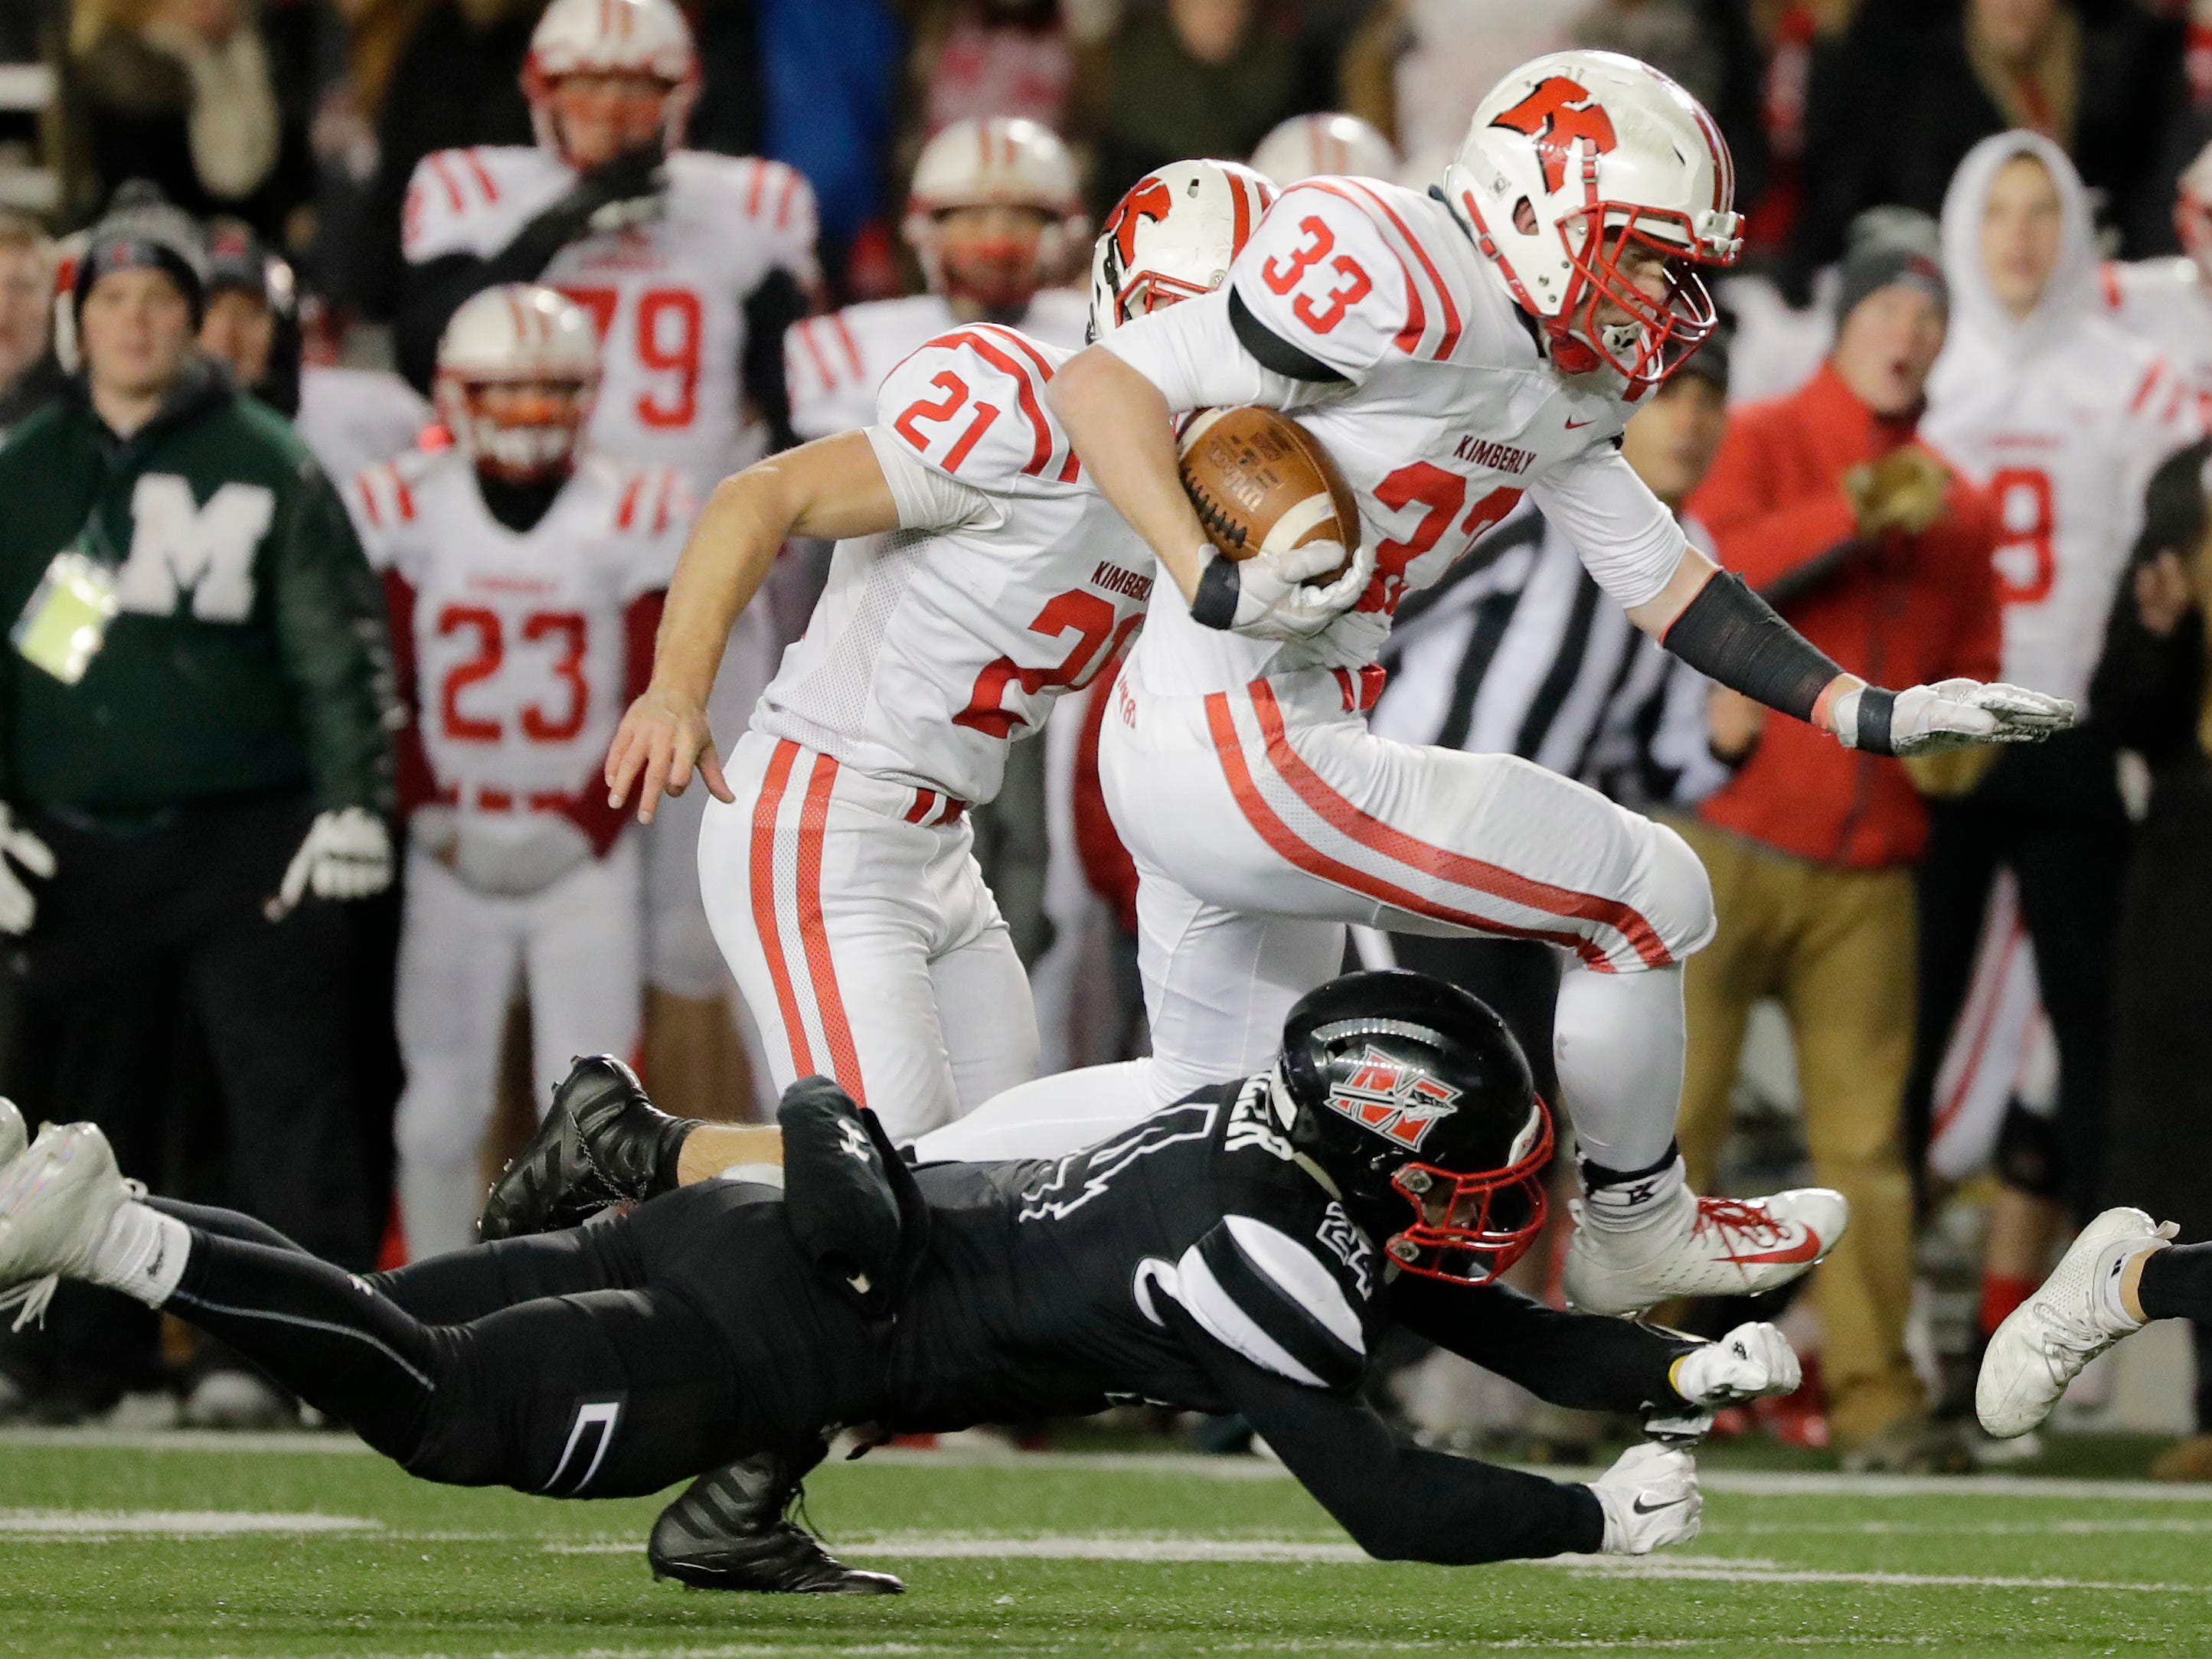 Kimberly's Caleb Frazer (33) rushes against Muskego in the WIAA Division 1 championship game at Camp Randall Stadium on Friday, November 16, 2018 in Madison, Wis.